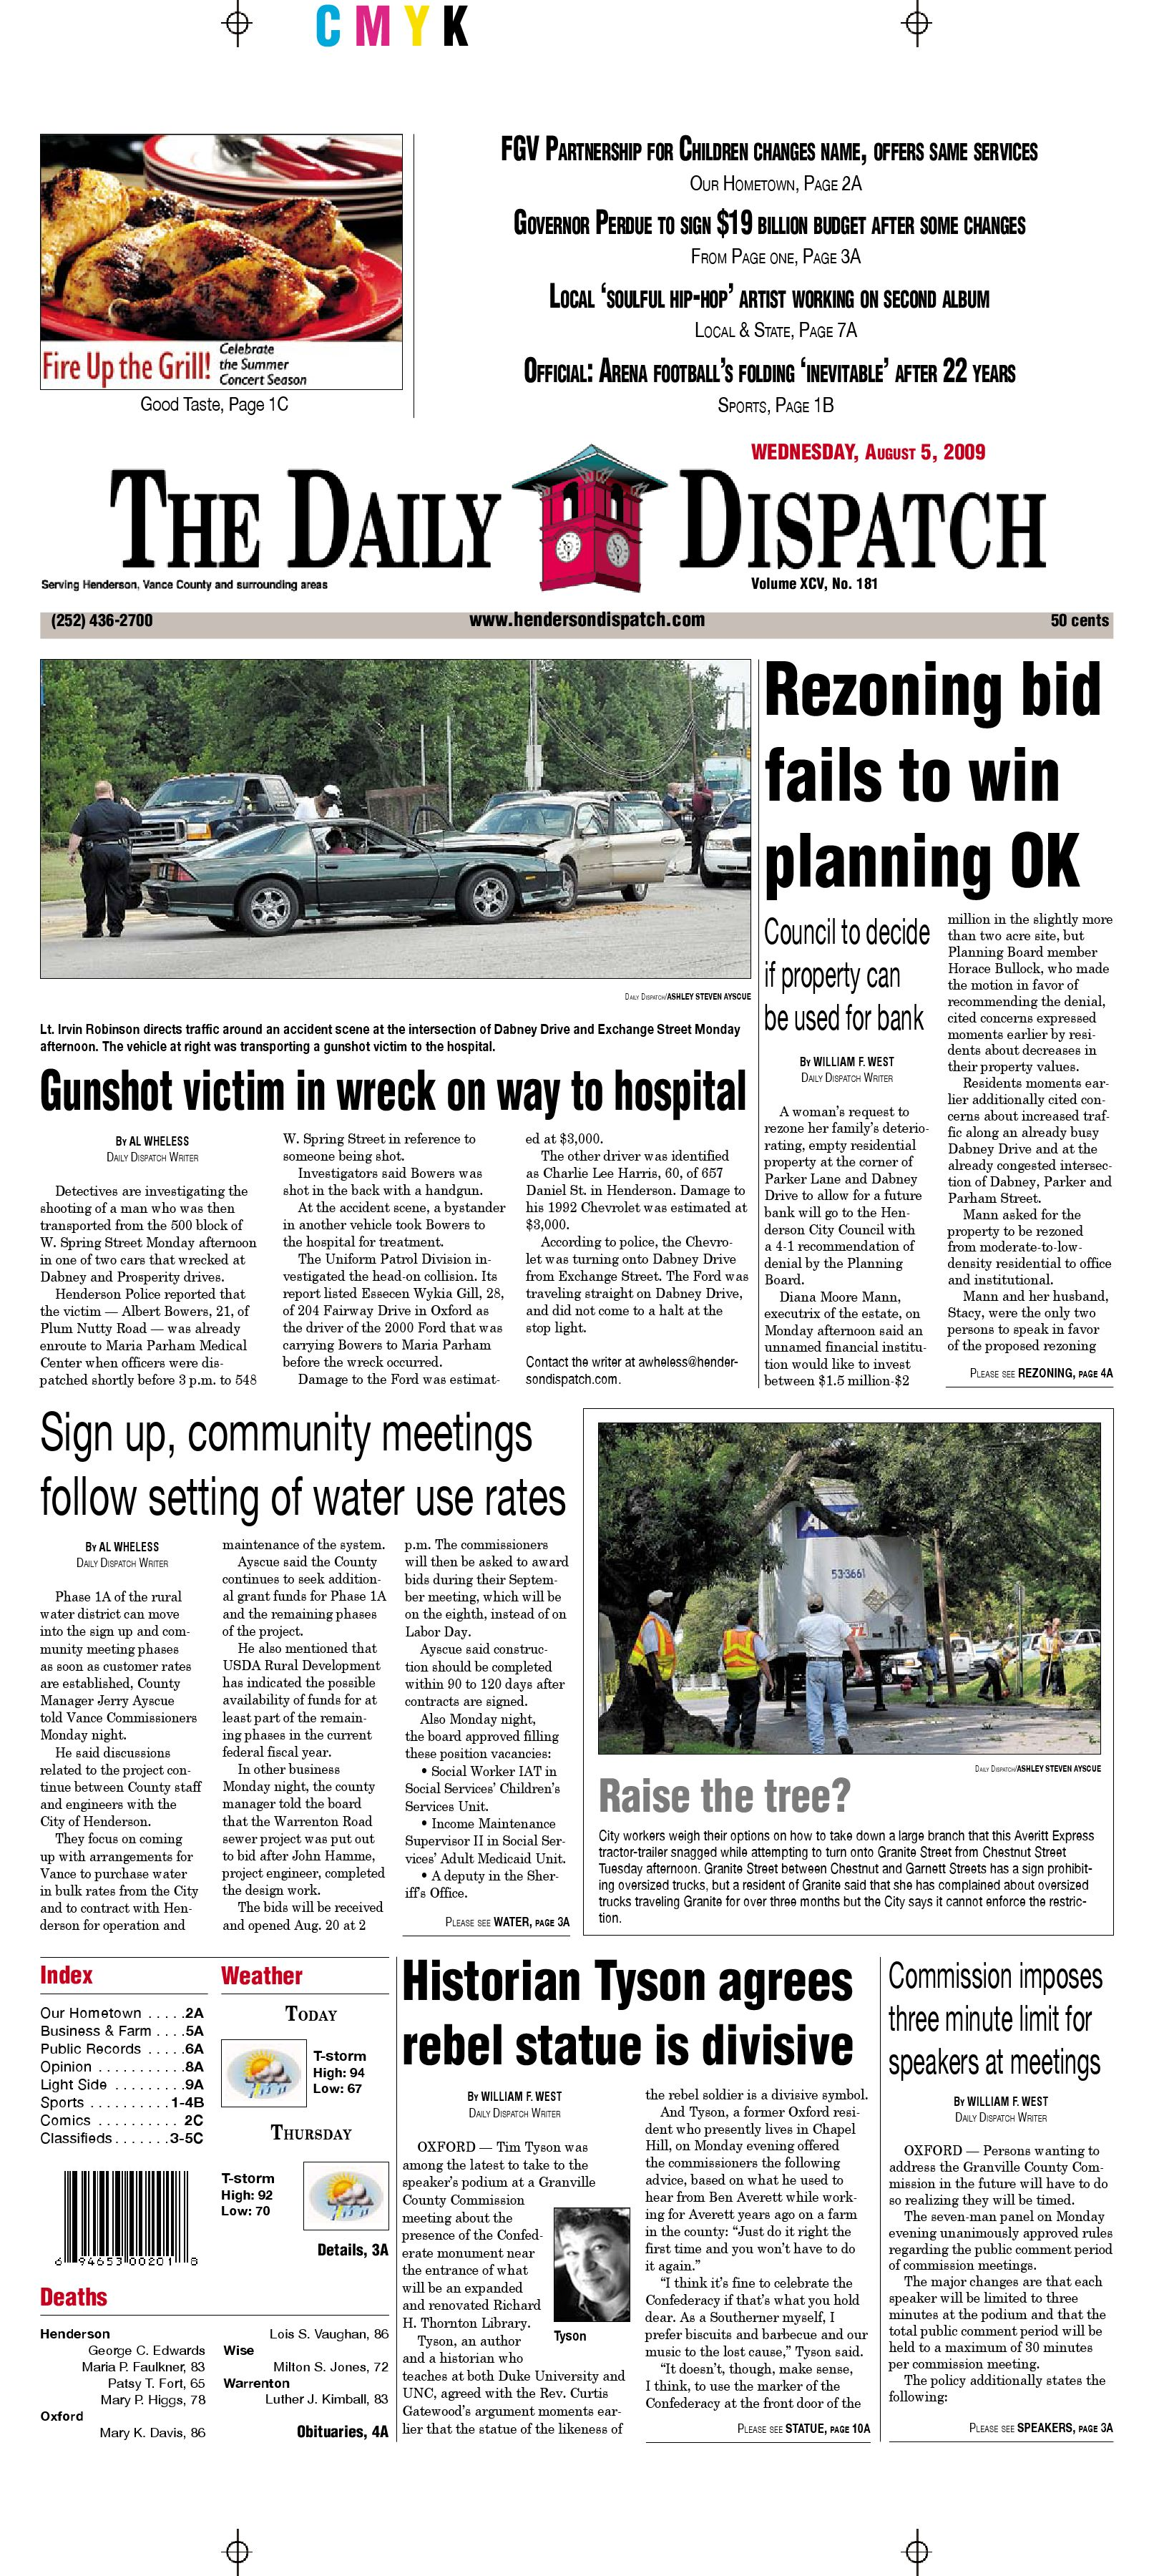 The Daily Dispatch Wednesday August 5 2009 by The Daily Dispatch